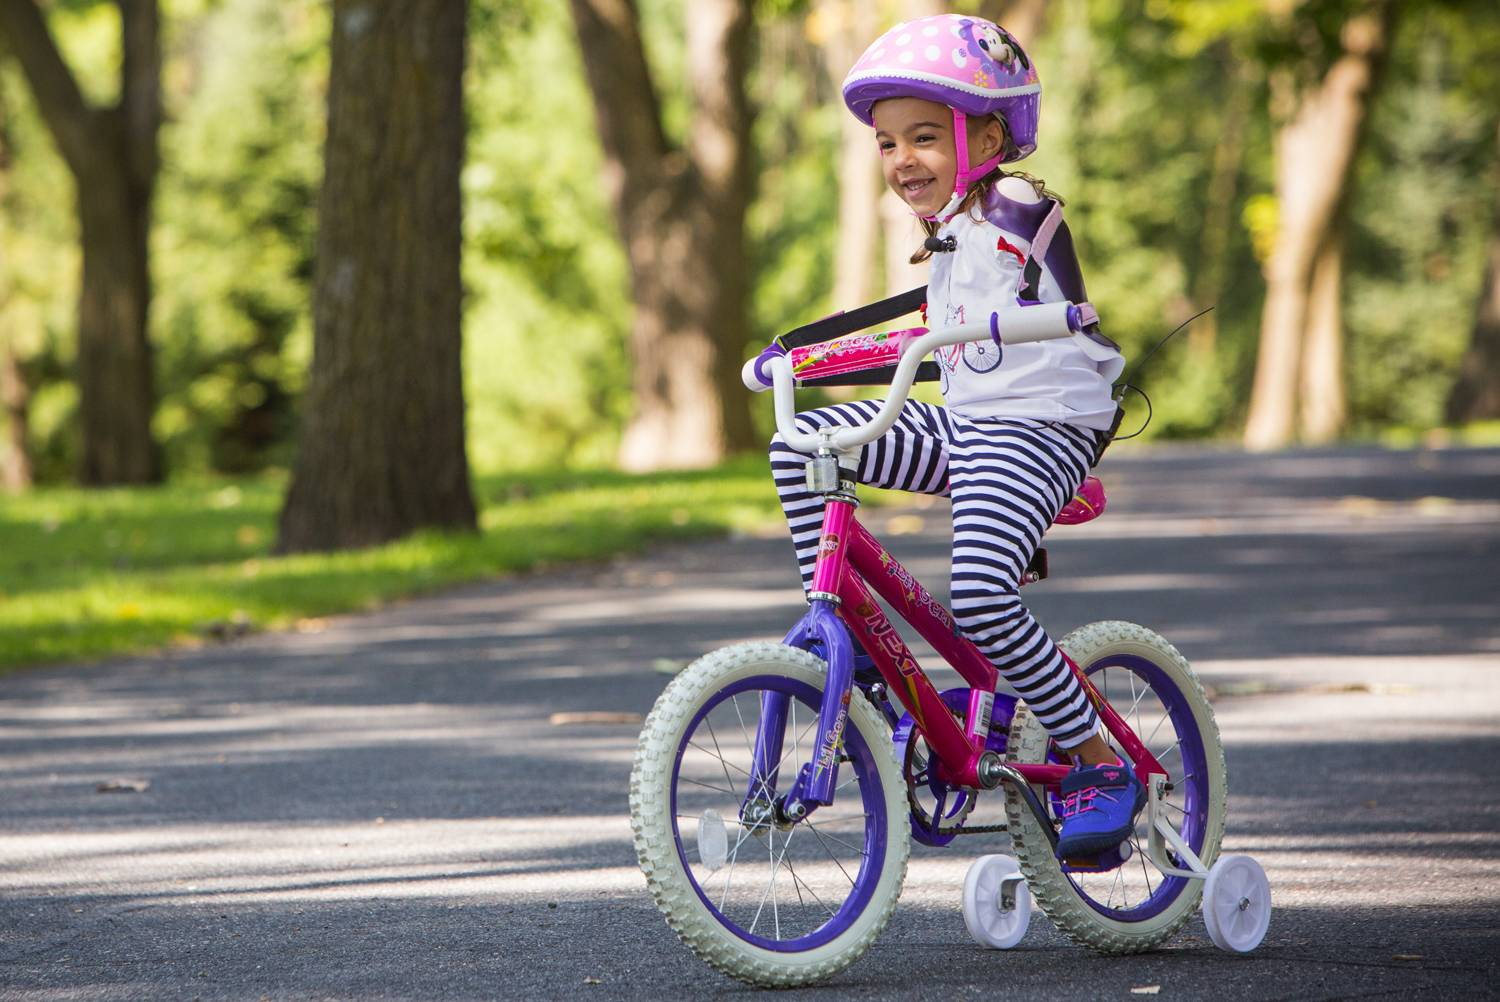 Gillette patient Ruth Evelyn (RE) who was born without arms rides her bike